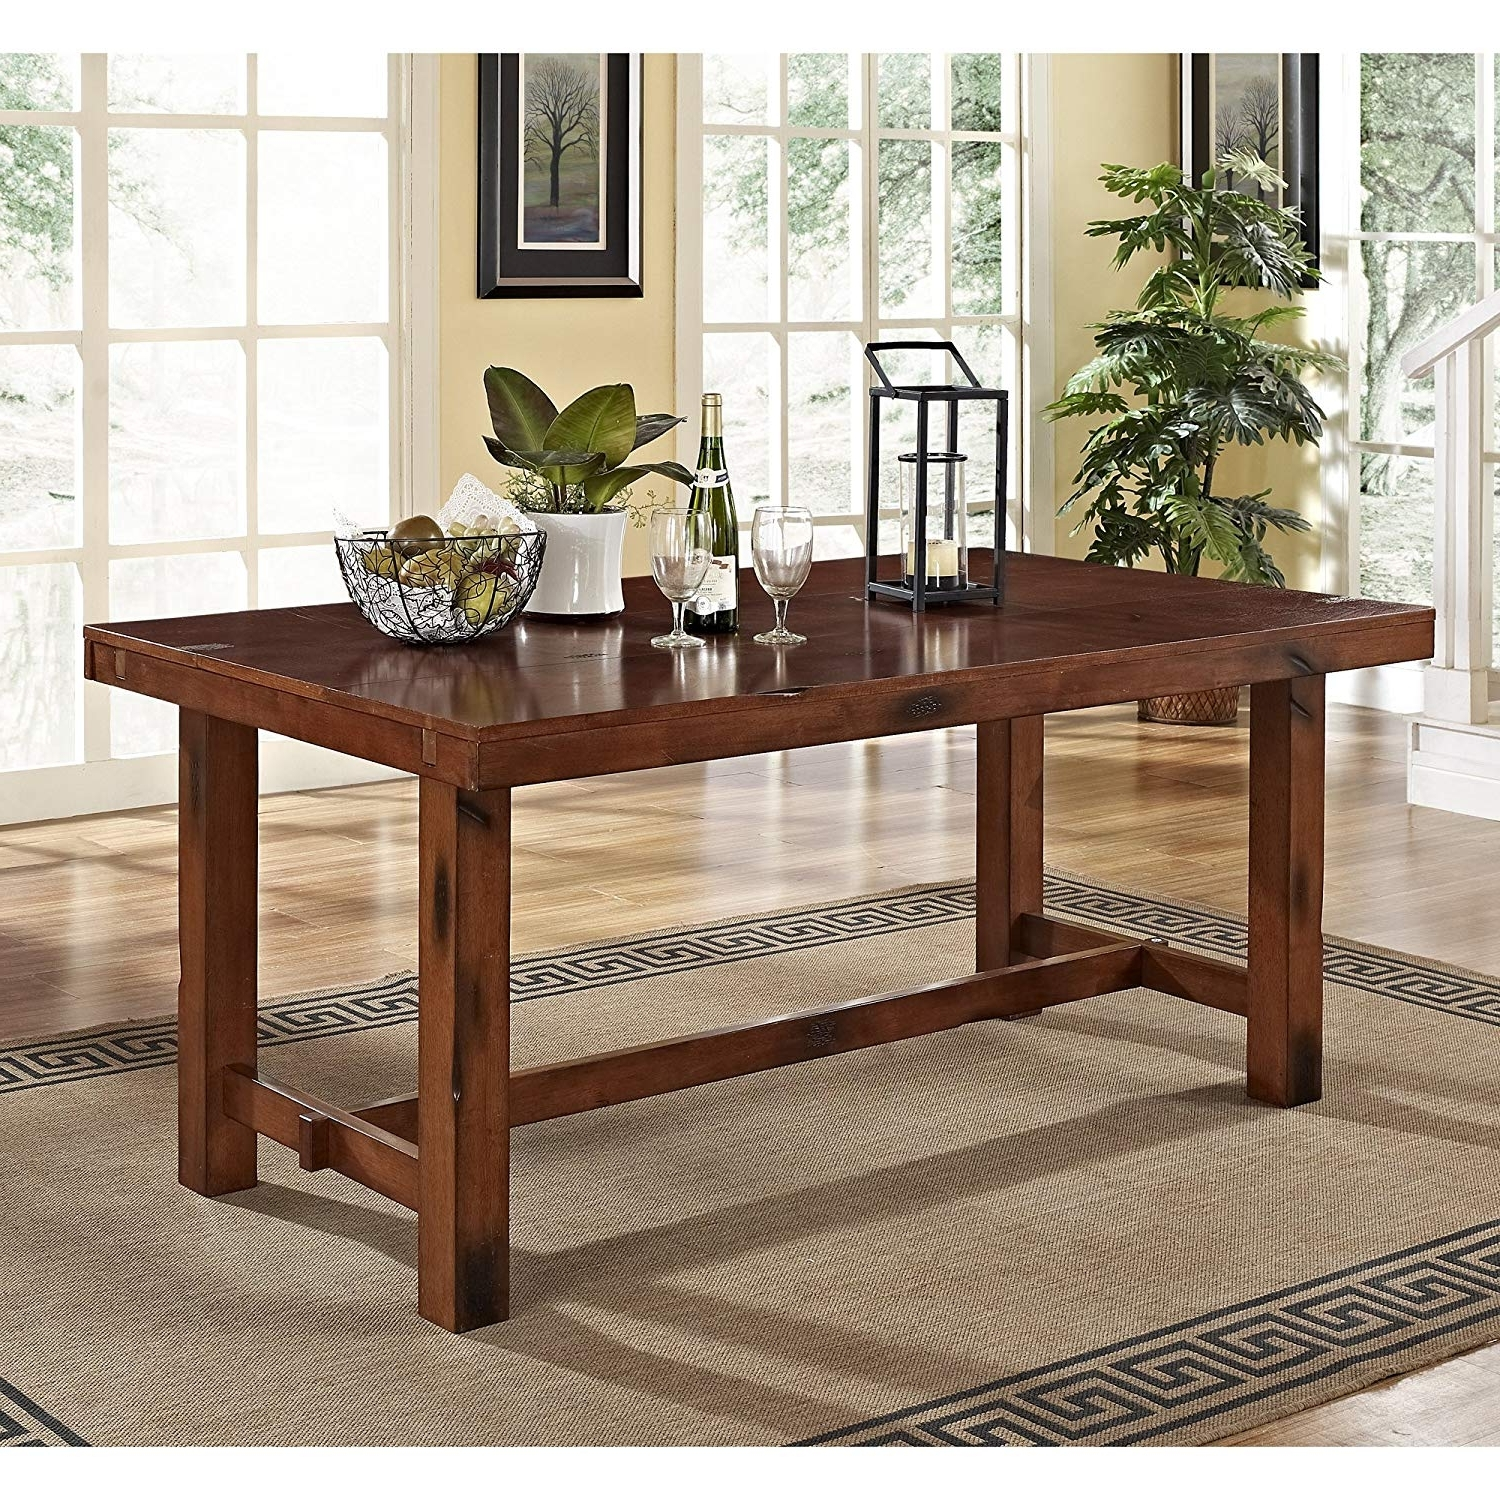 "Solid Wood Dining Tables Pertaining To Most Popular Walker Edison 96"" Solid Wood Dark Oak Dining Table (View 17 of 25)"